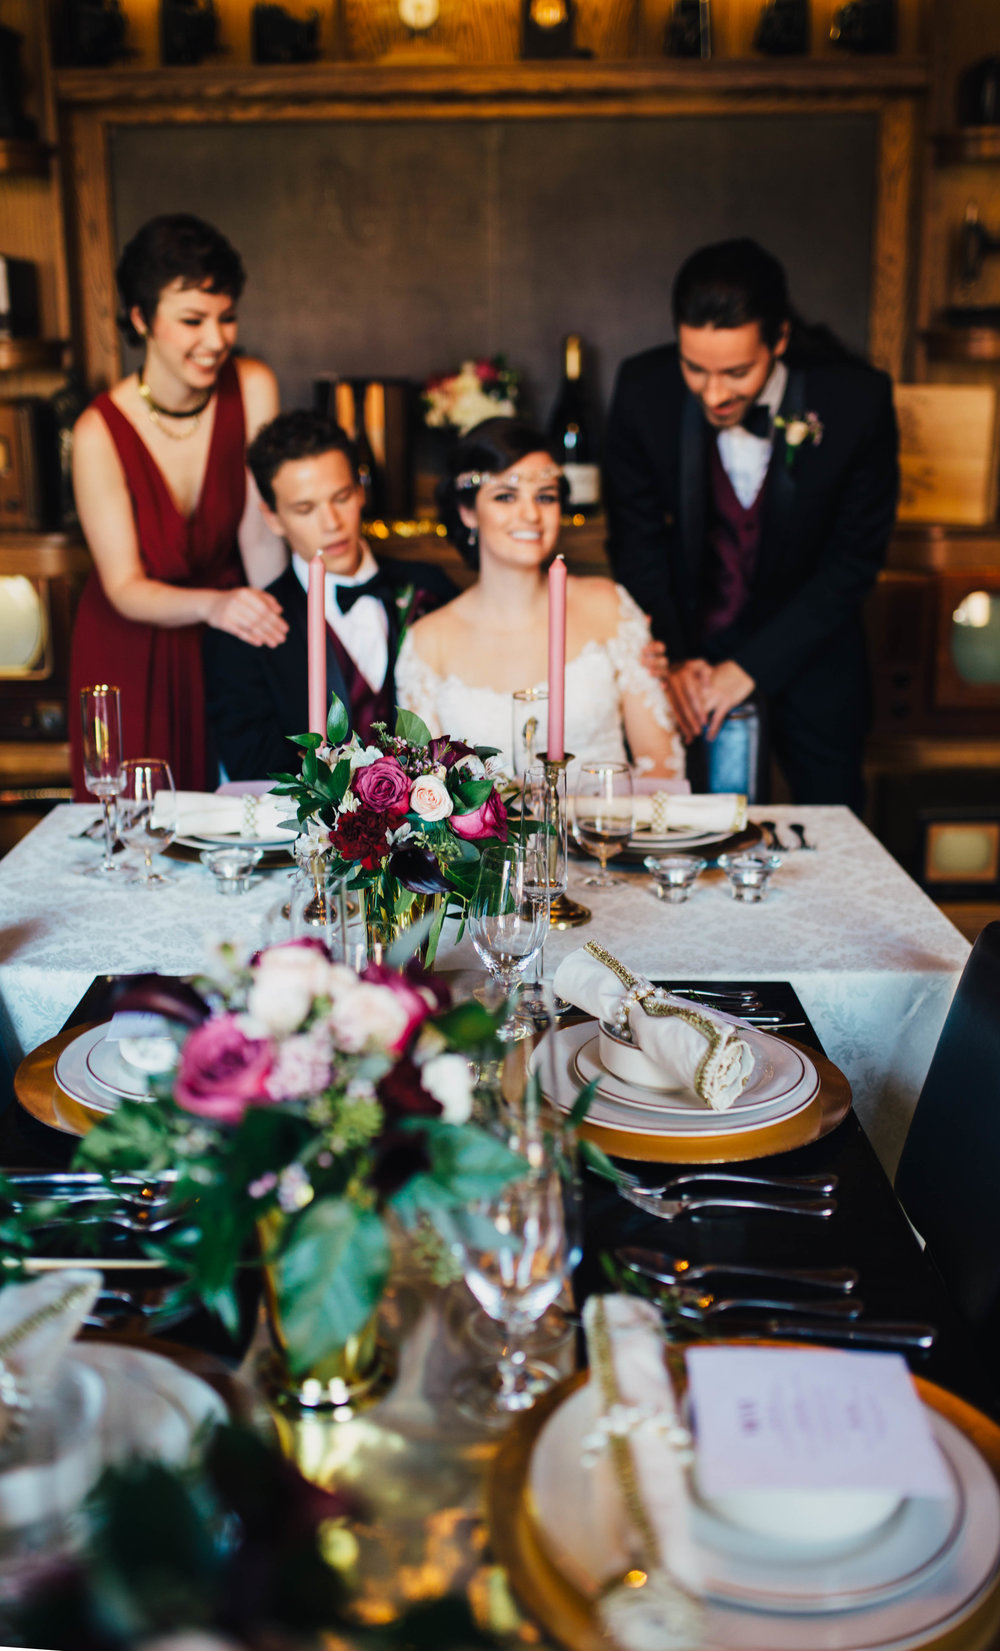 WEDDINGS - Styling & Coordination